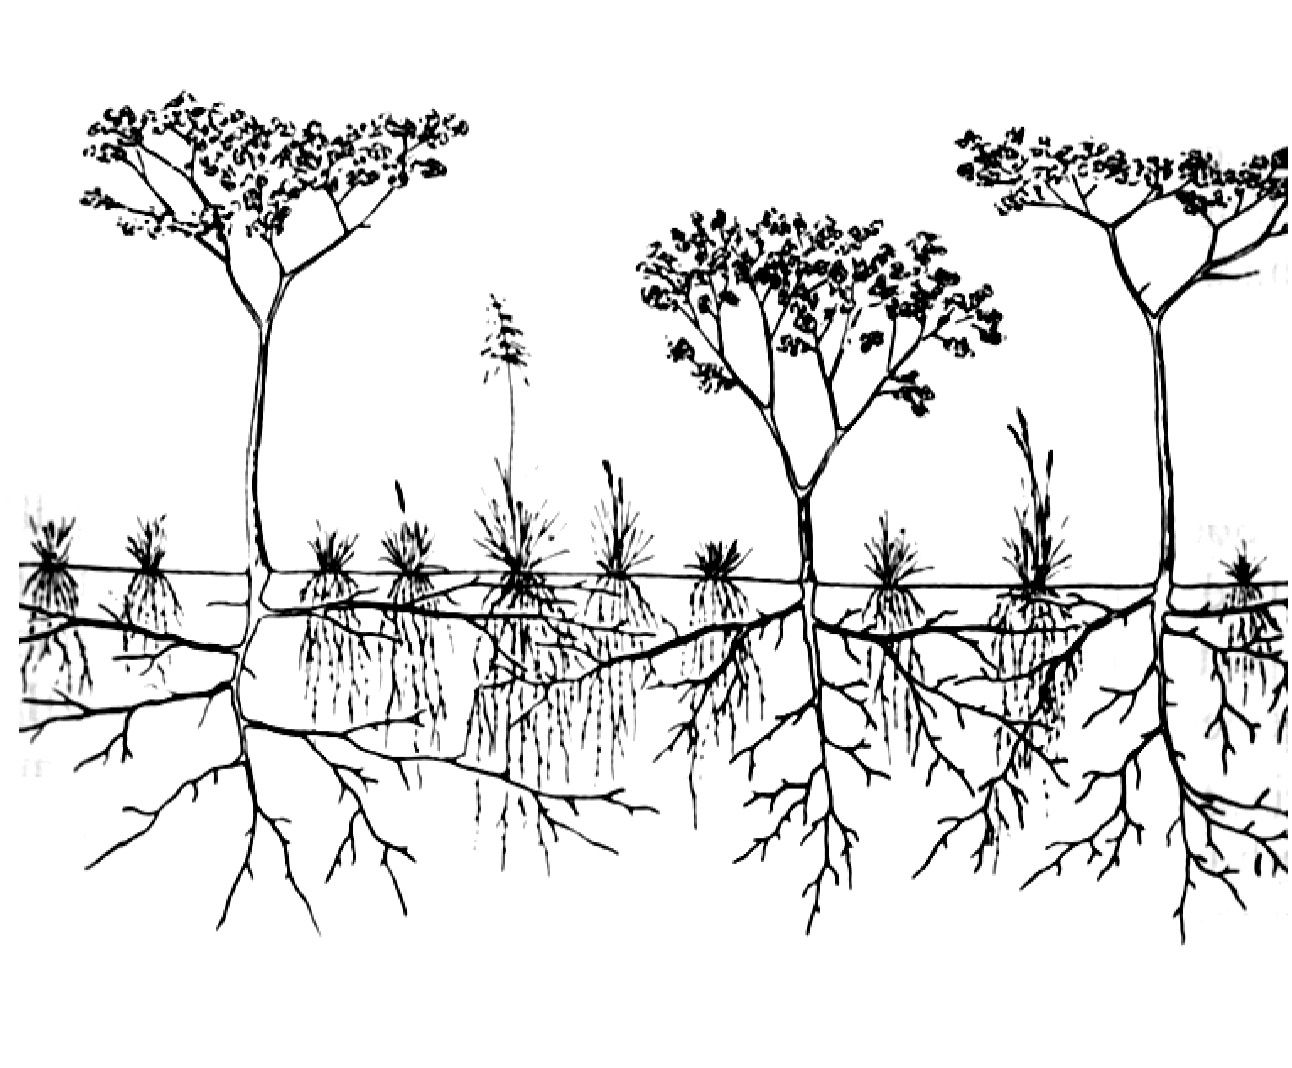 Representation Of Herbaceous Shallow Fibrous Root System